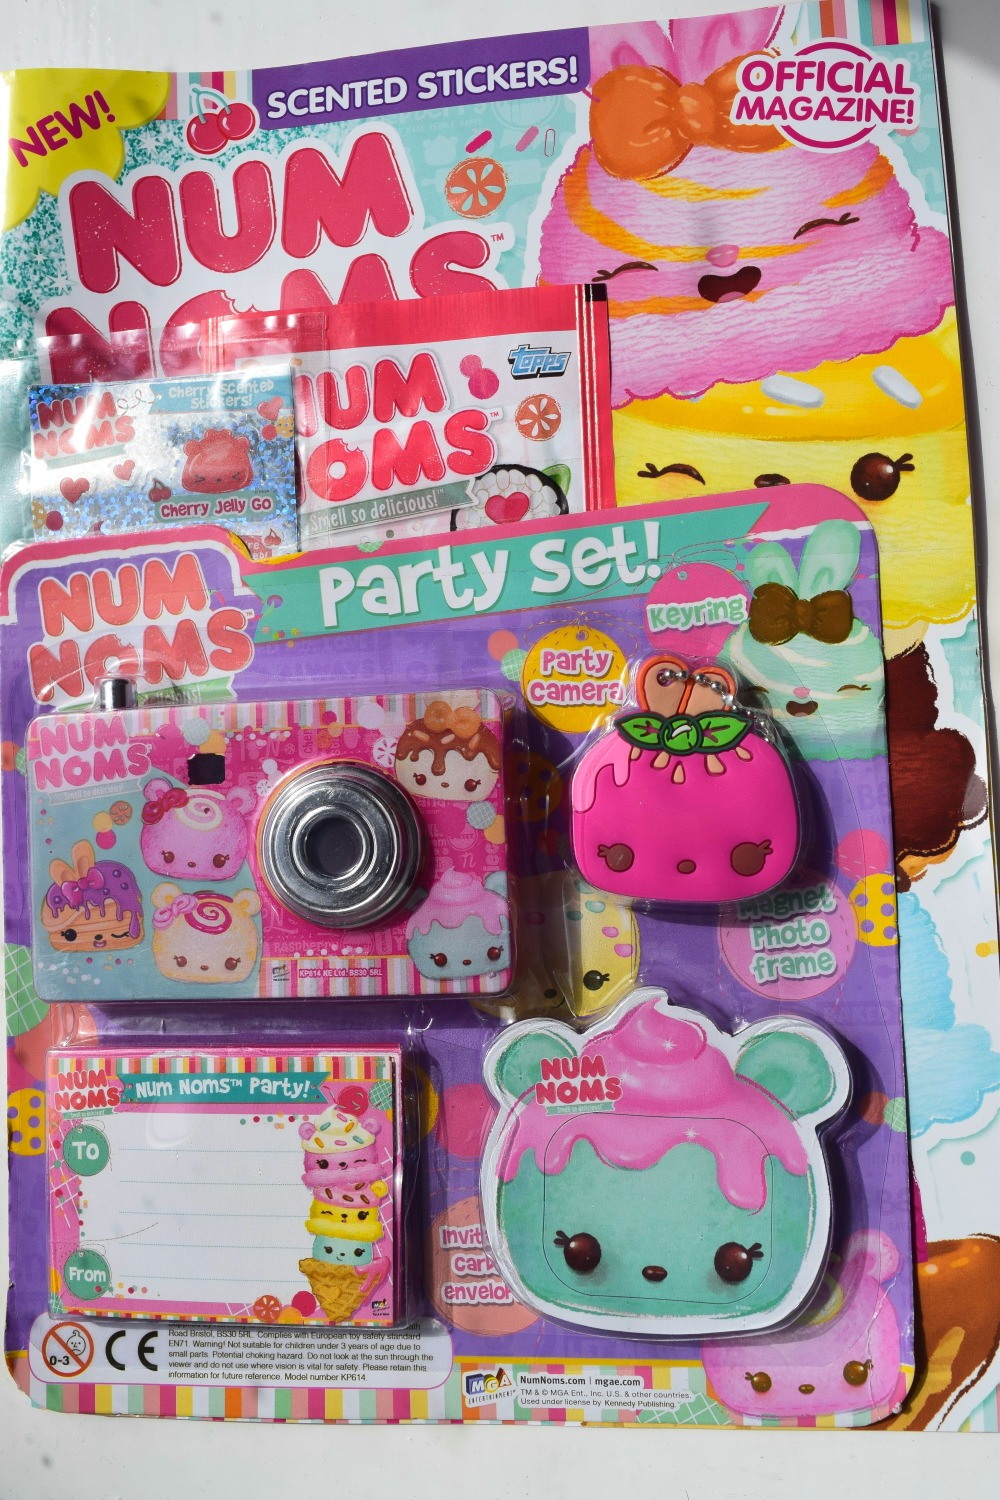 New num Noms Magazine